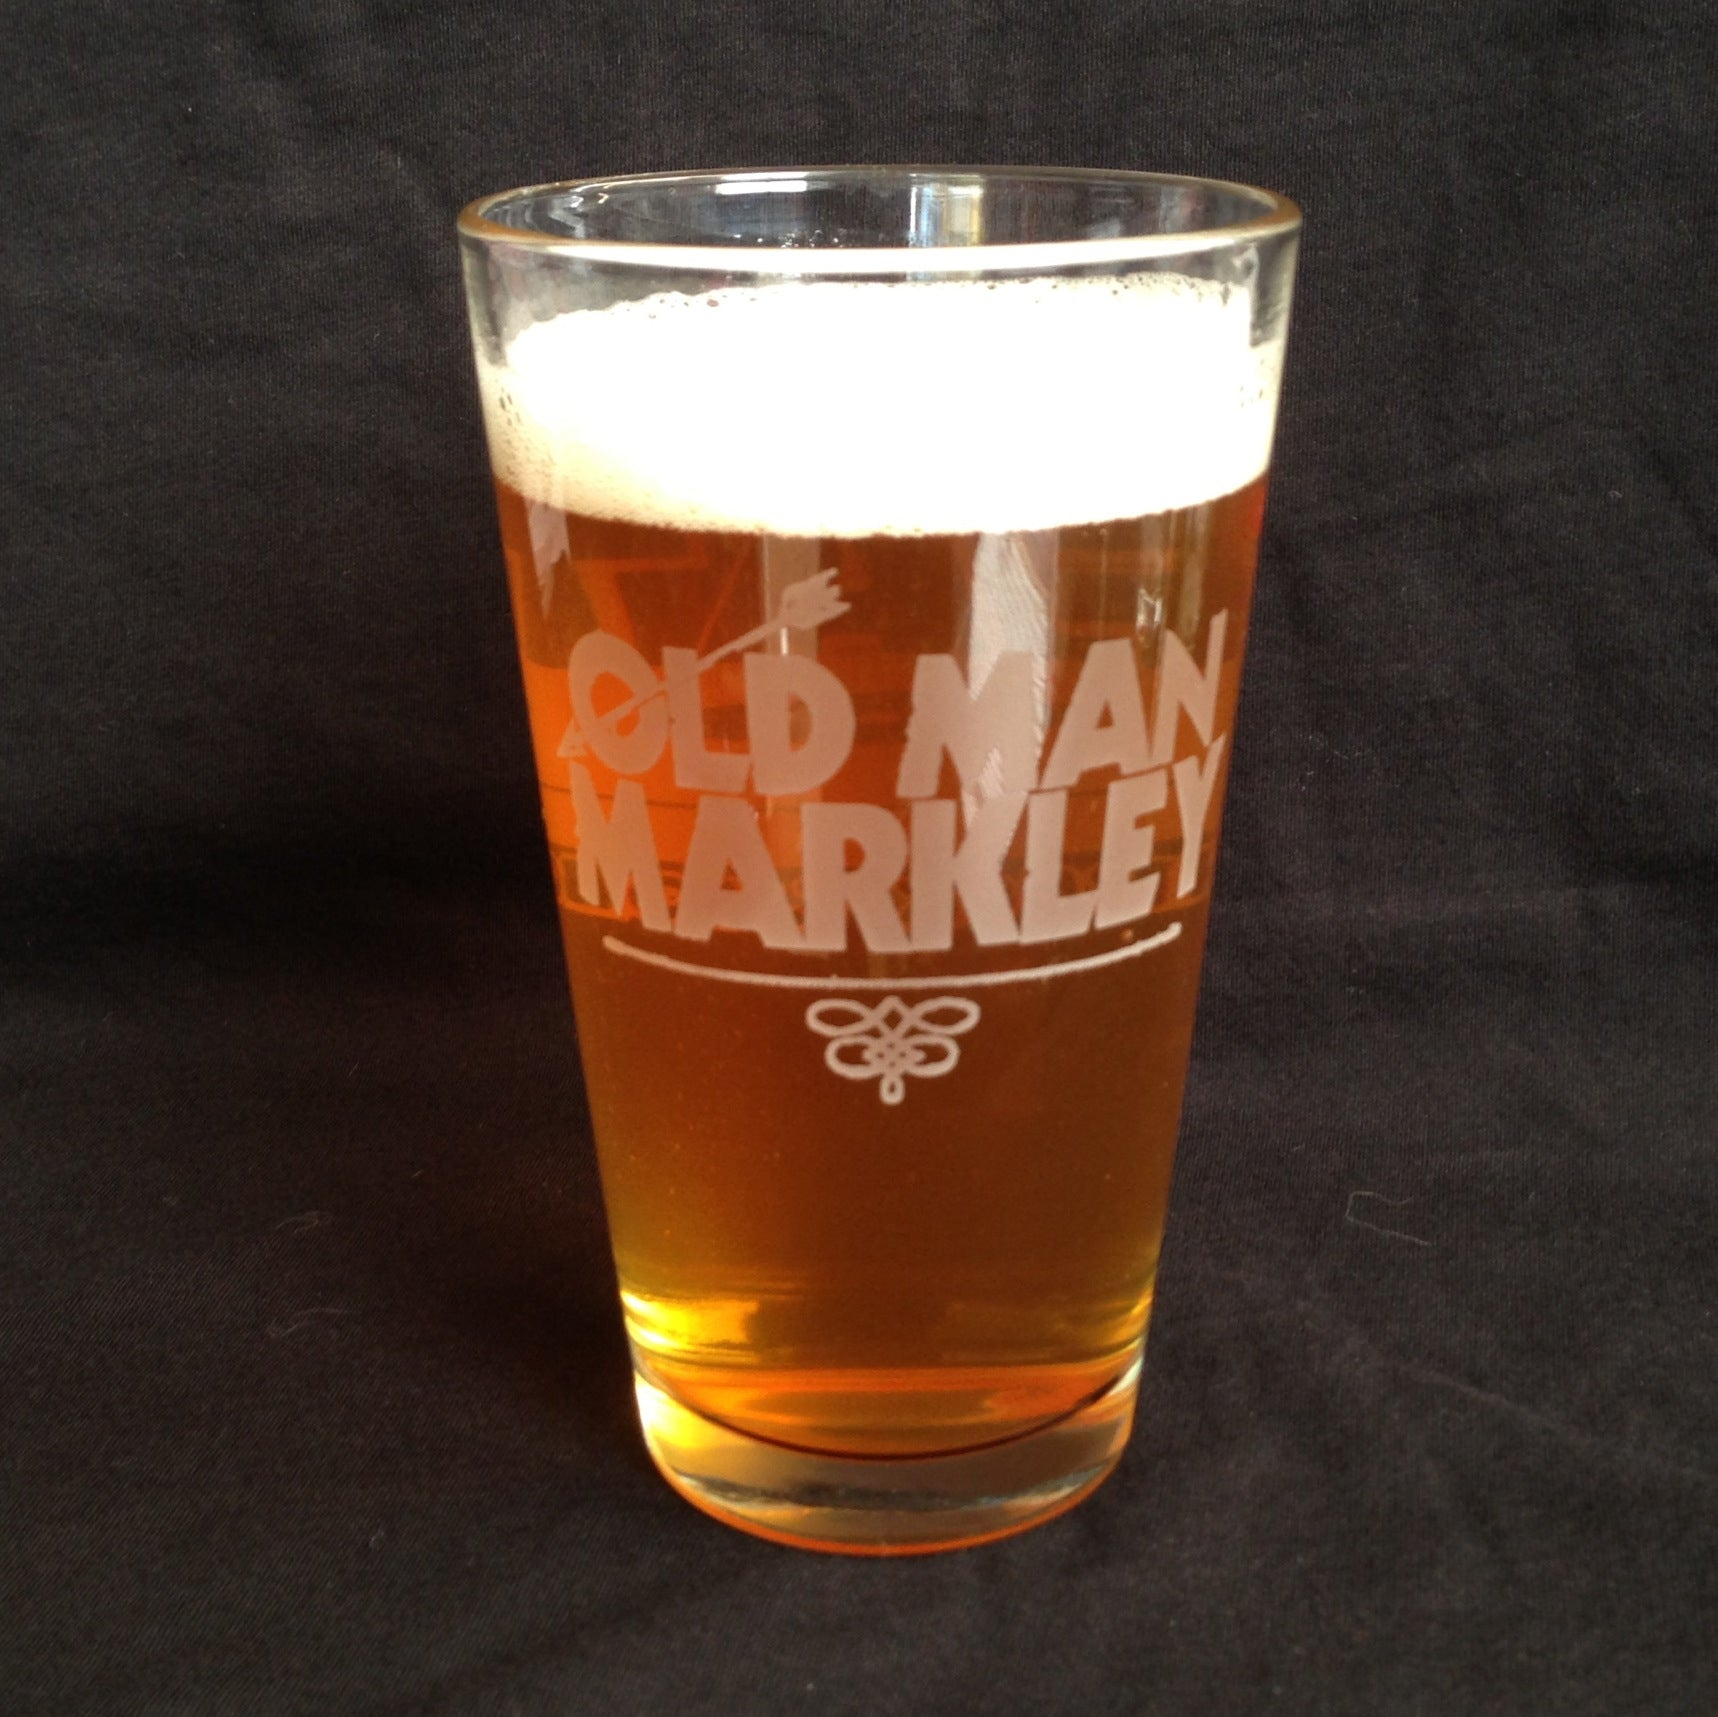 OLD MAN MARKLEY Pint Glass